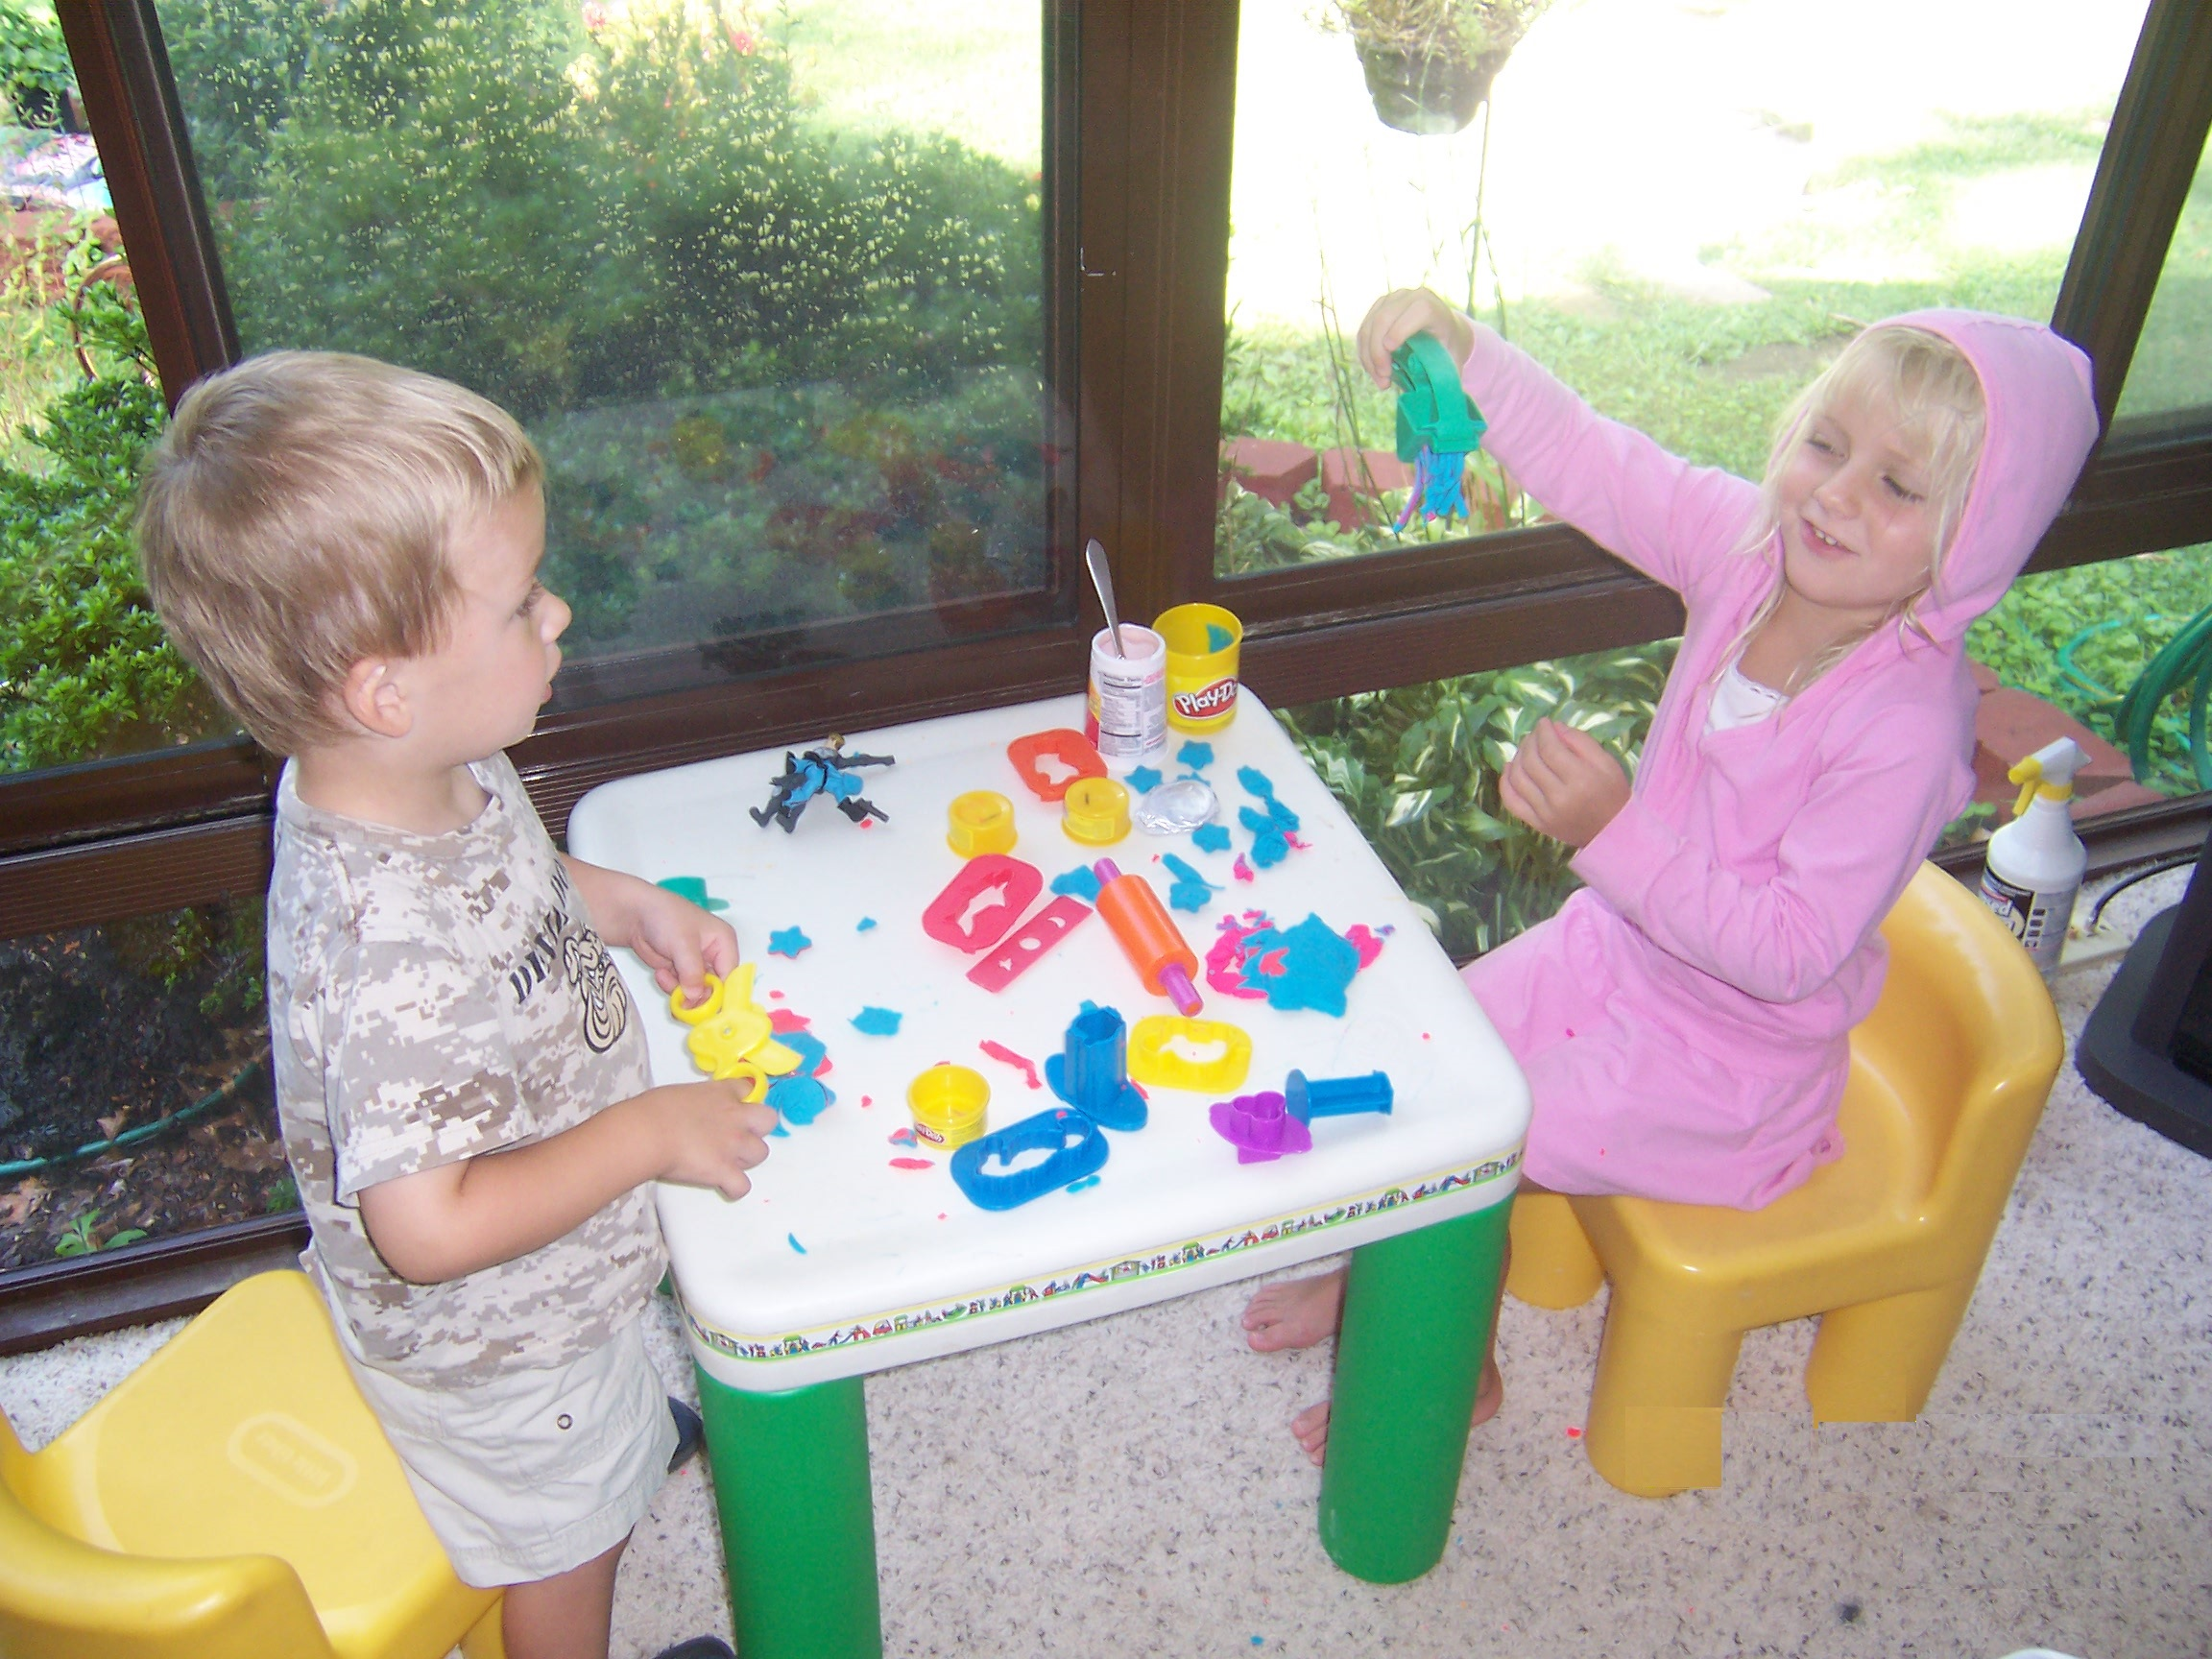 Grandchildren at table playing (C)